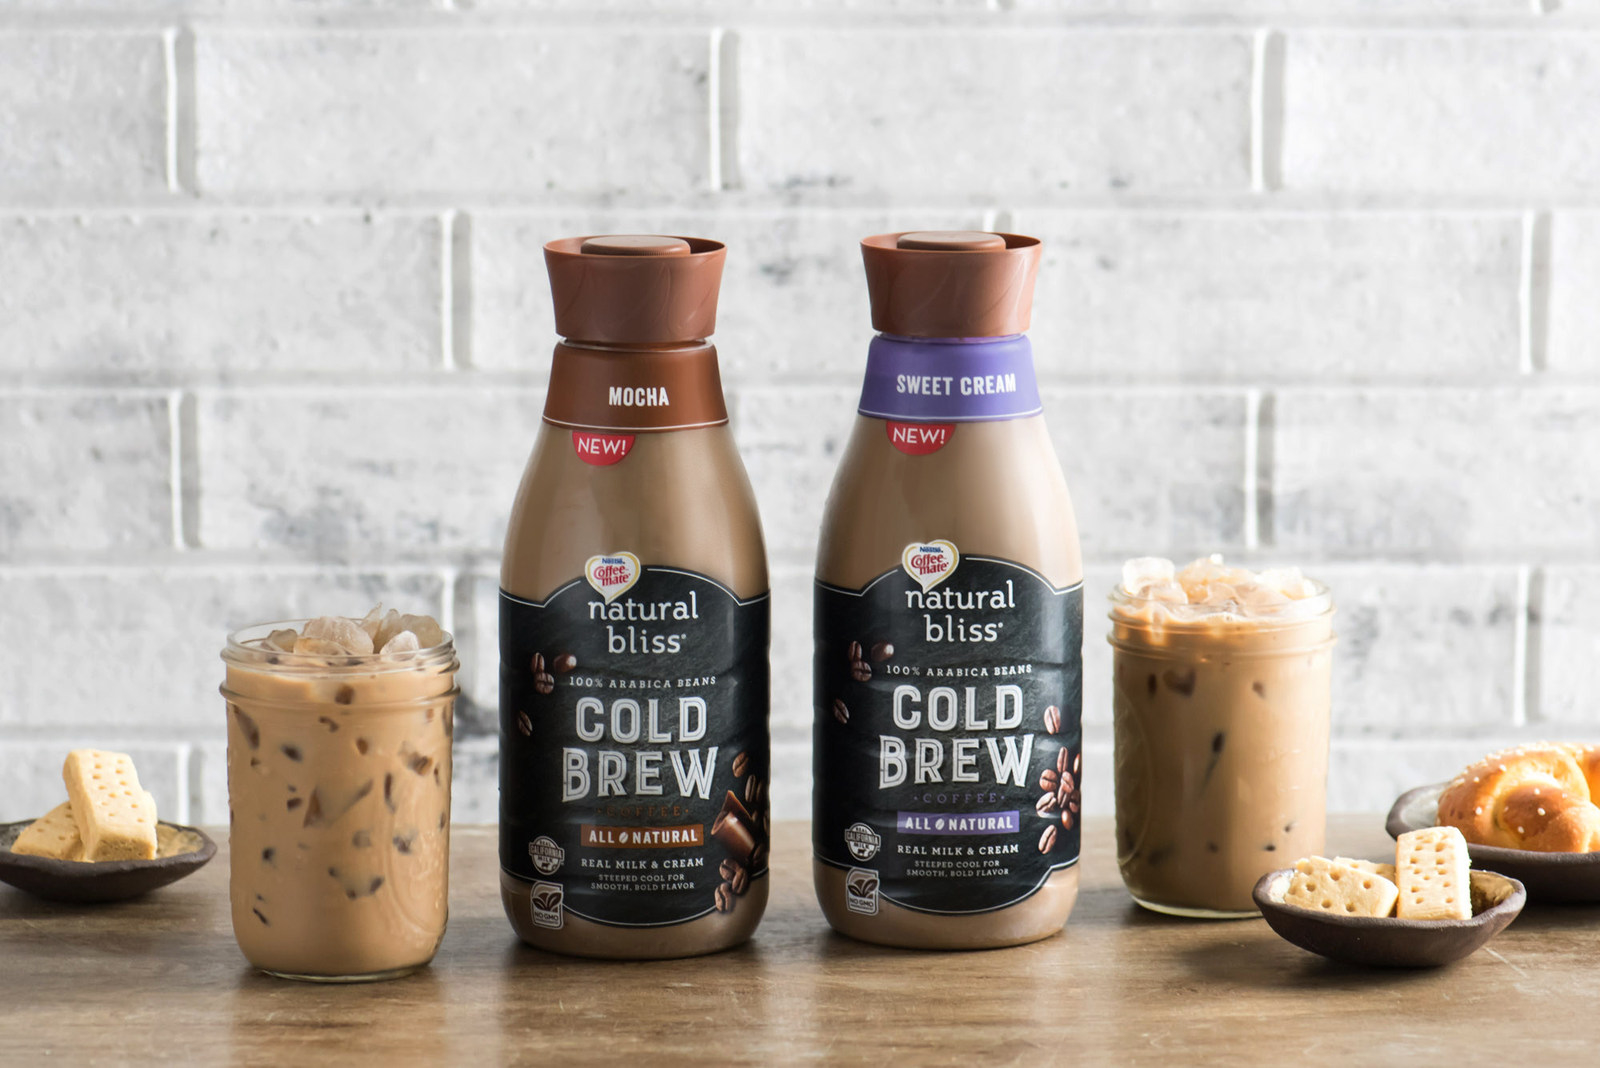 Nestle Coffee-Mate natural bliss cold brew coffee